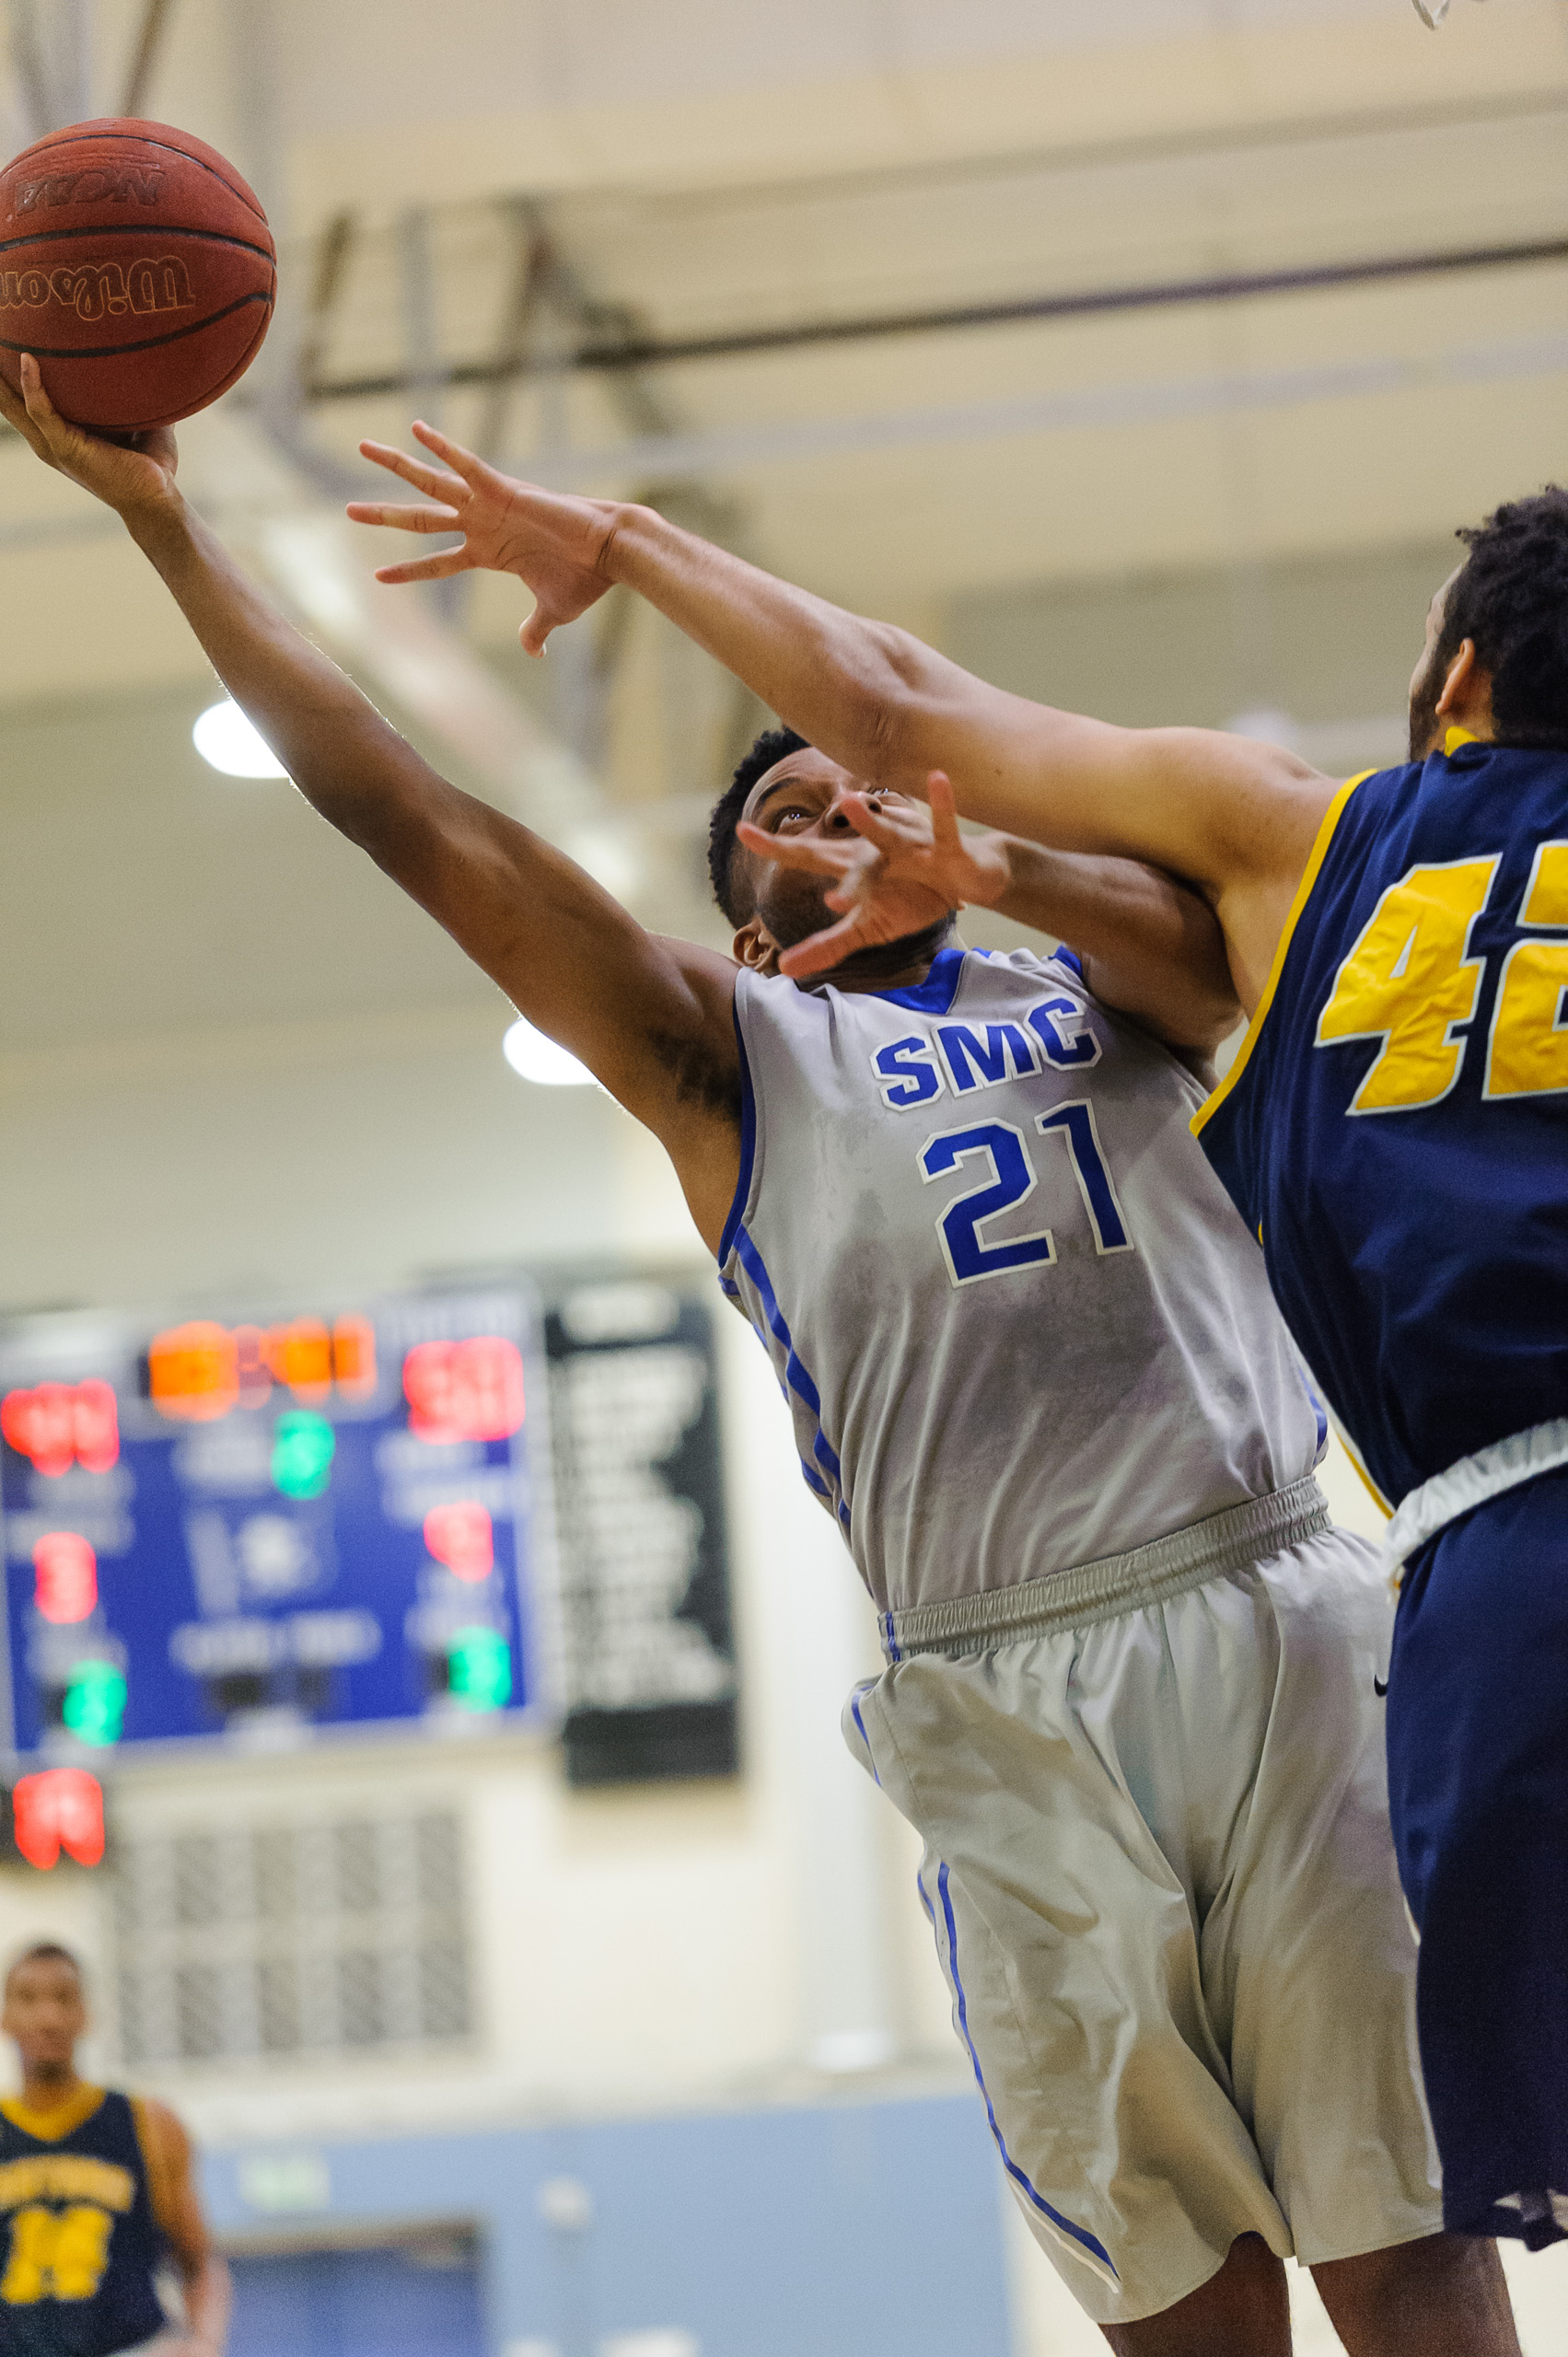 Forward Khalil Taylor (21,Left) of Santa Monica College attempts a layup while contested by Philip Webb (42,Right) of the College of the Canyons. The Santa Monica College Corsairs lose the game 74-72 to the College of the Canyons Cougars. The game was held at the SMC Pavilion at the Santa Monica College Main Campus in Santa Monica, Calif.. February 10, 2018. (Photo by: Justin Han/Corsair Staff)